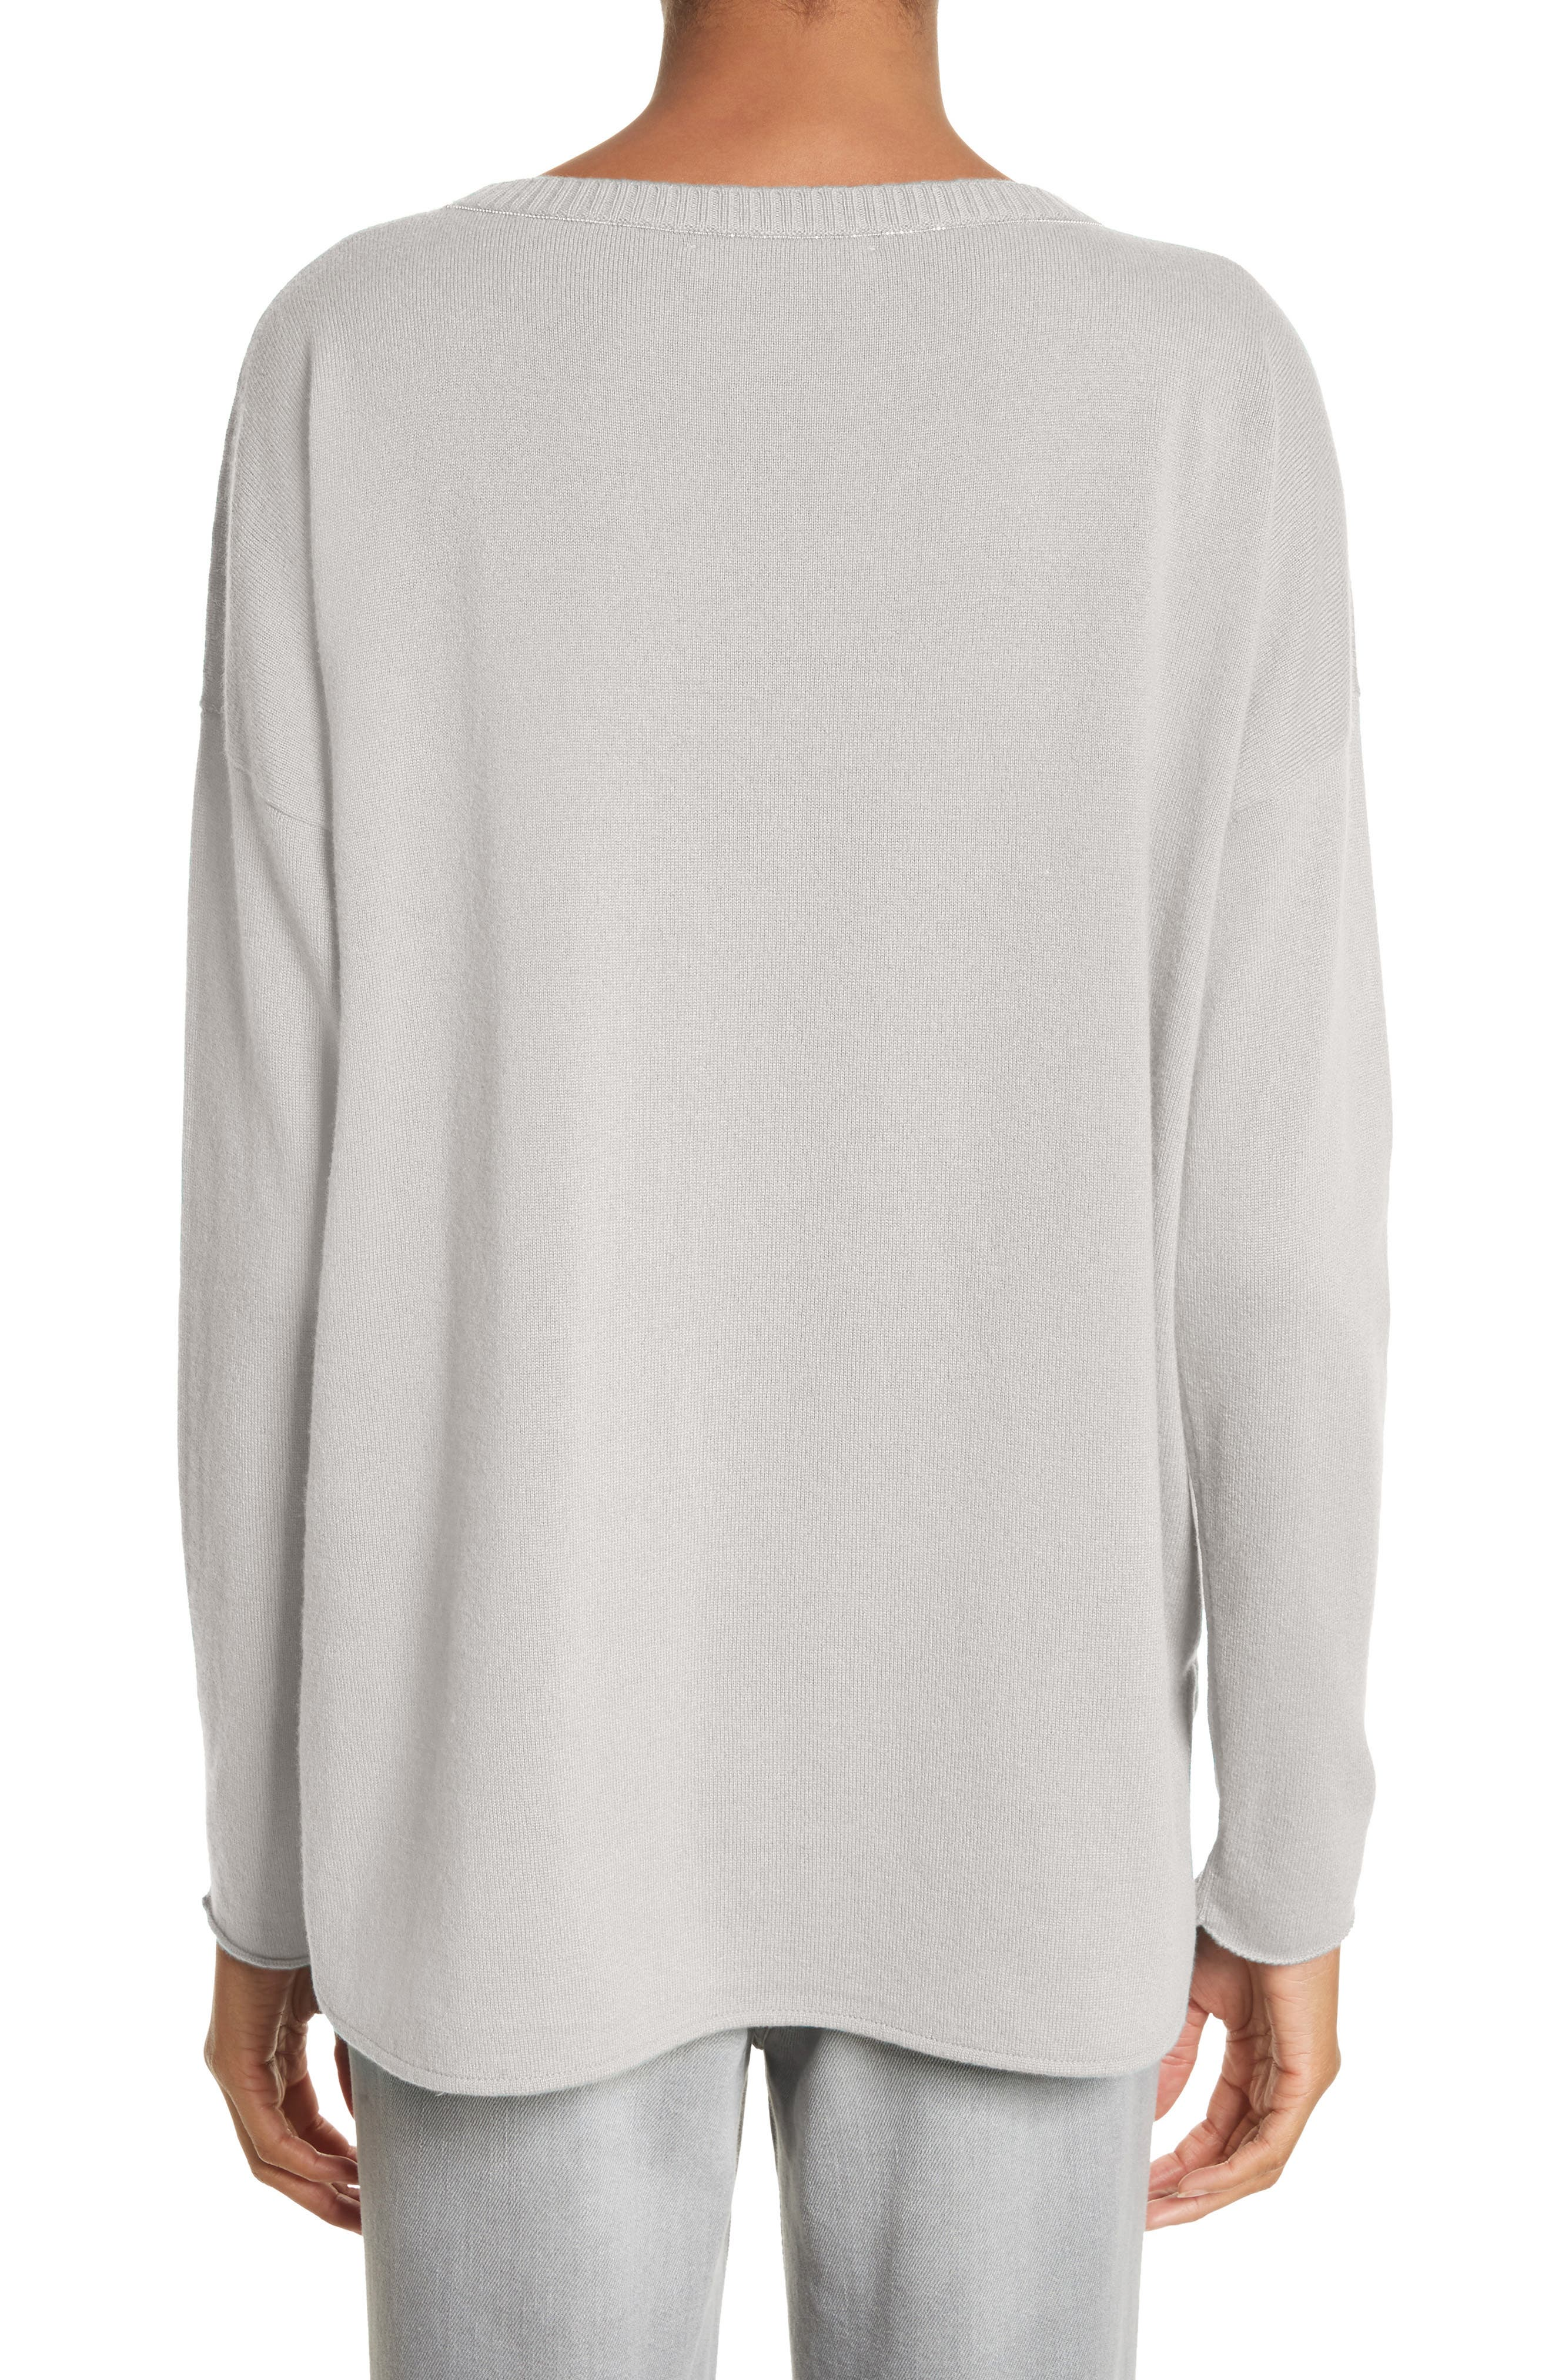 Beaded Cashmere Sweater,                             Alternate thumbnail 2, color,                             050